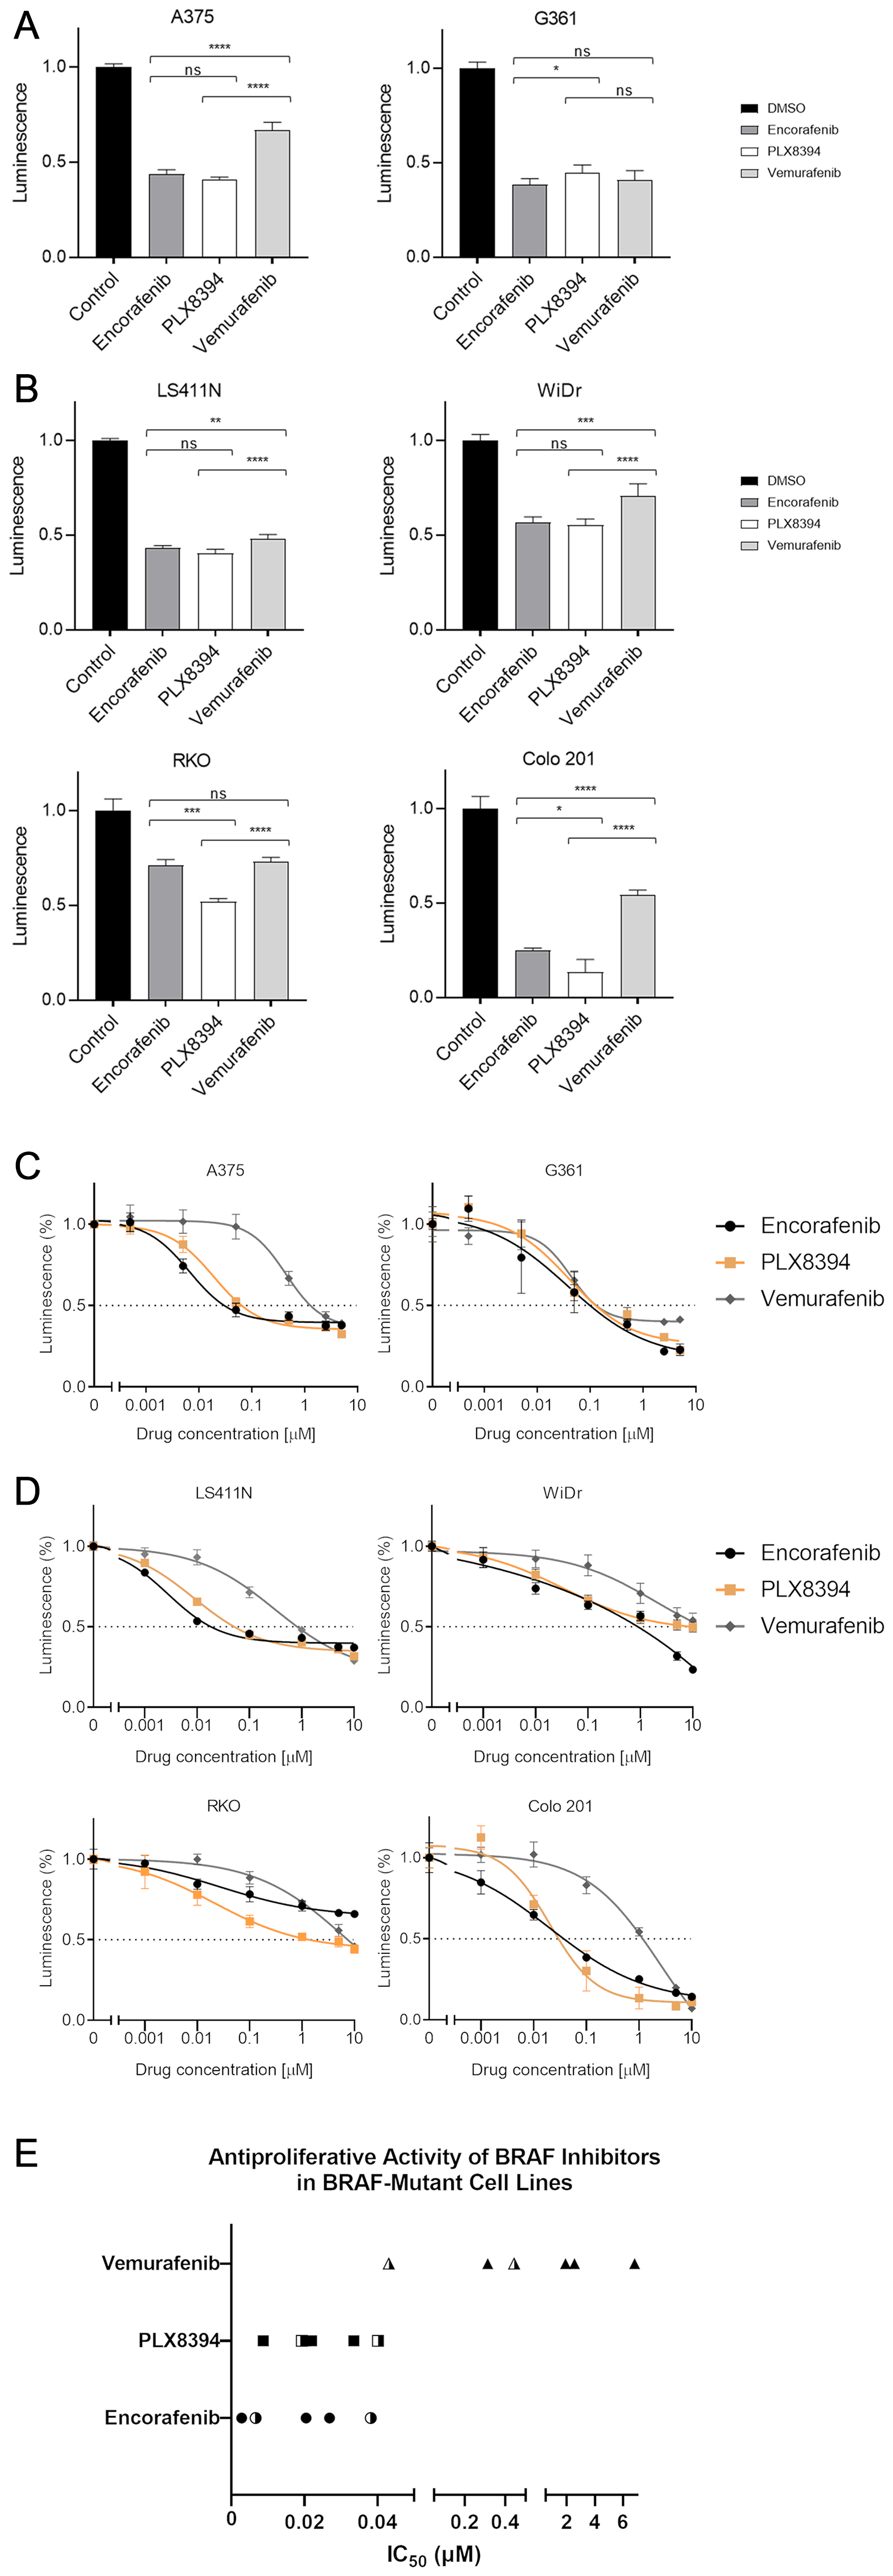 BRAF inhibitor-induced changes in cell viability.